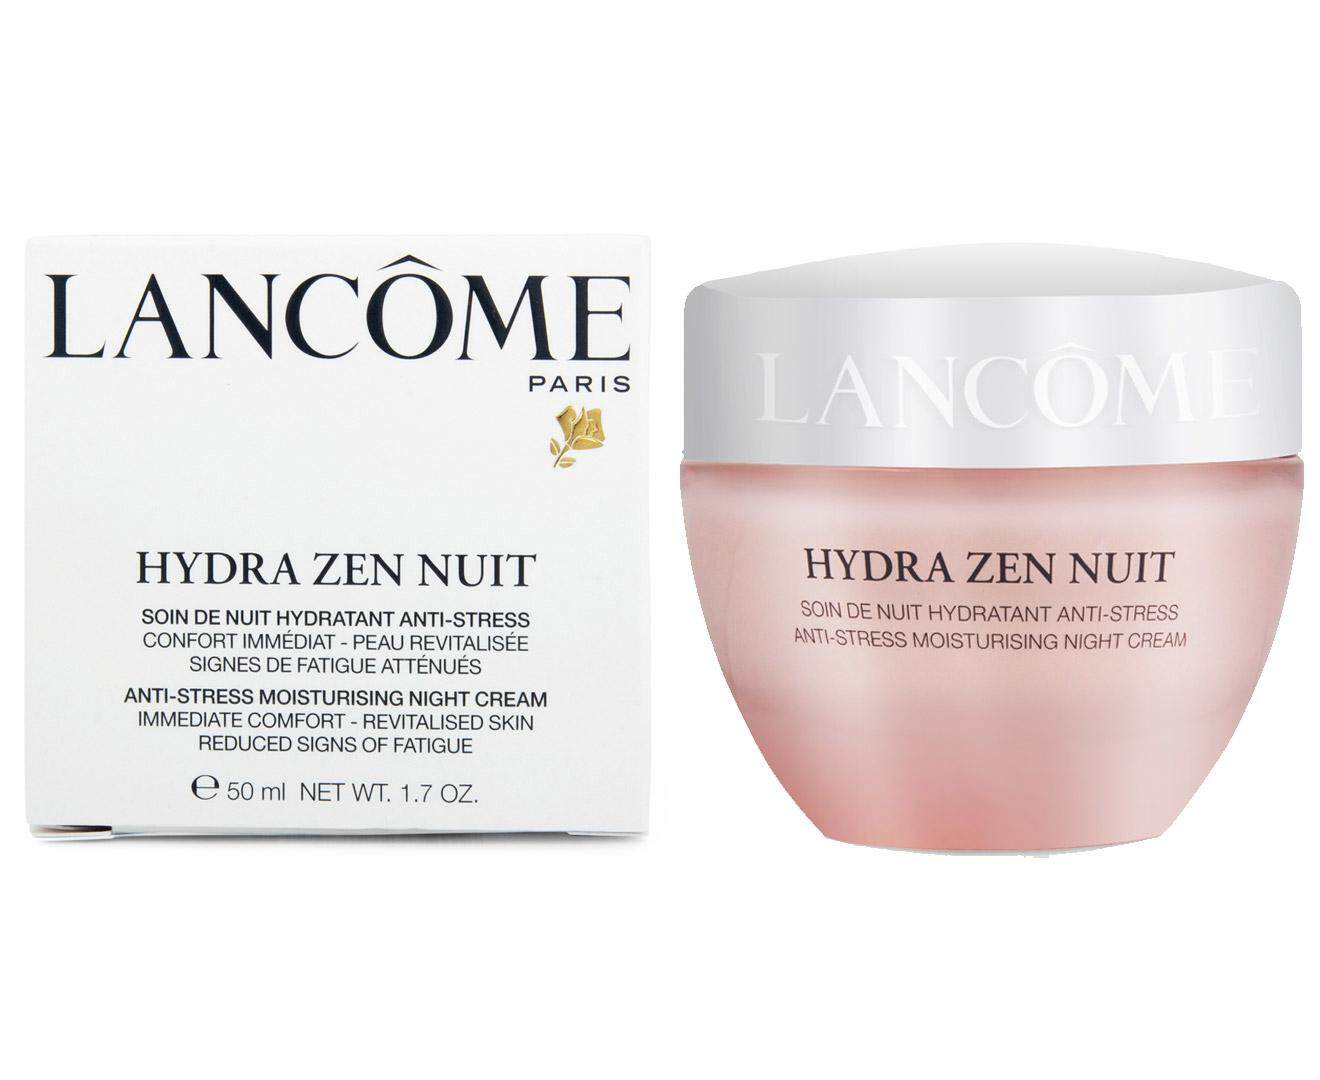 Lancome Hydra Zen Anti-Stress Moisturising Night Cream 50ml